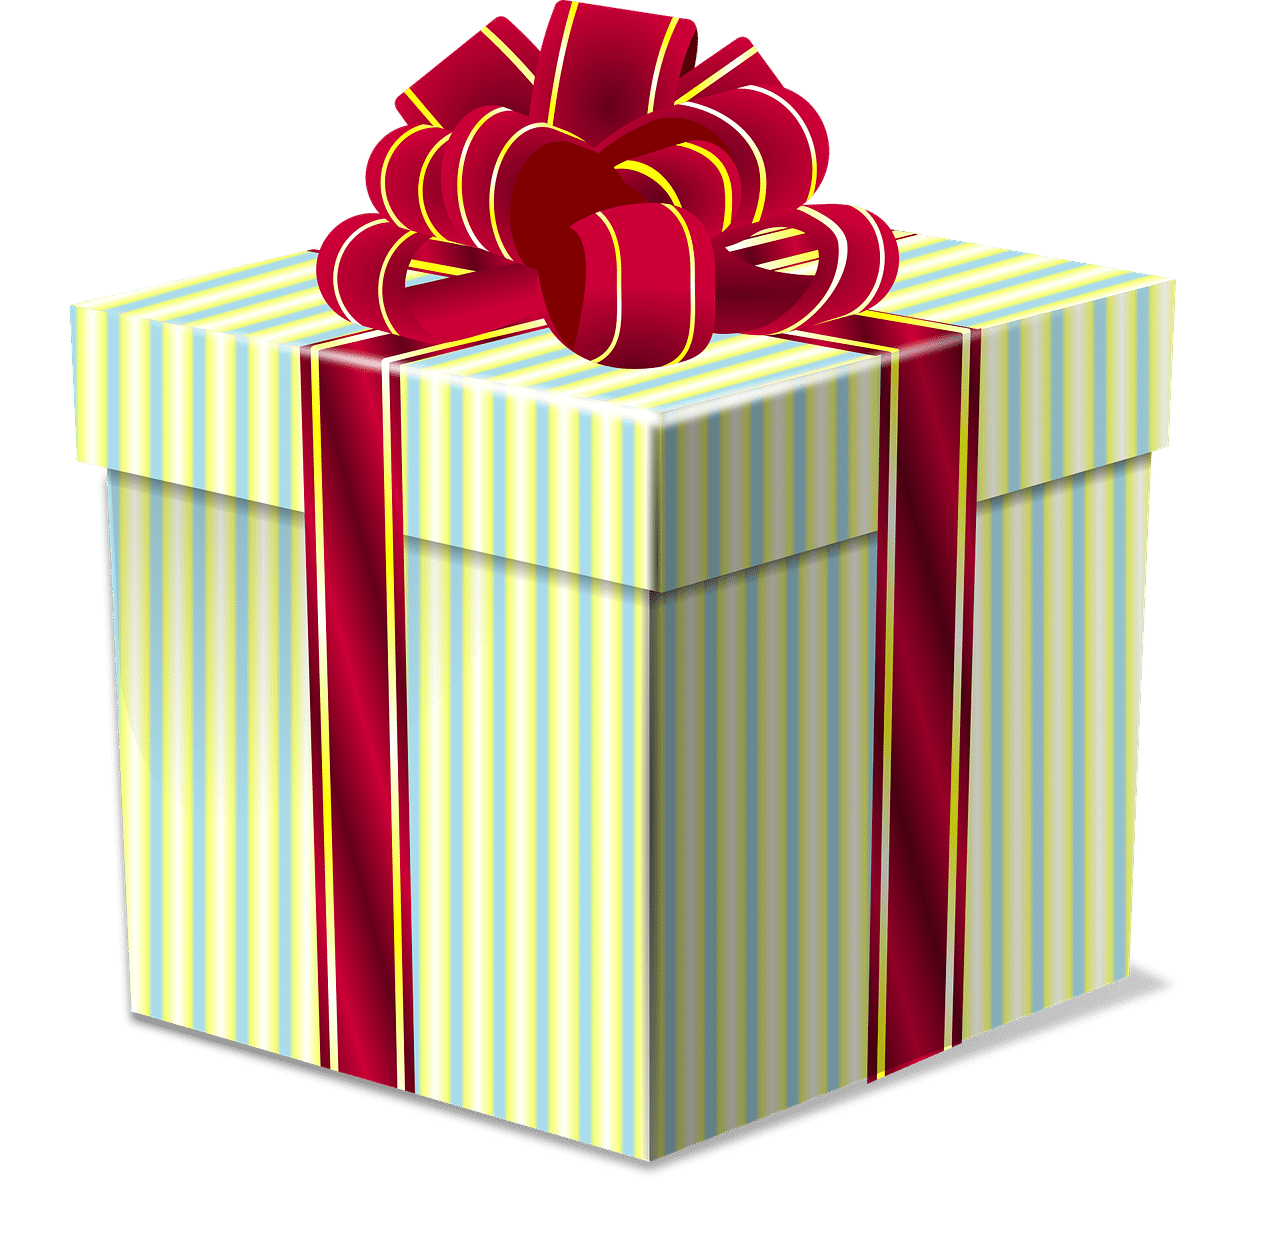 Resume Packages: The Gift That Keeps Giving